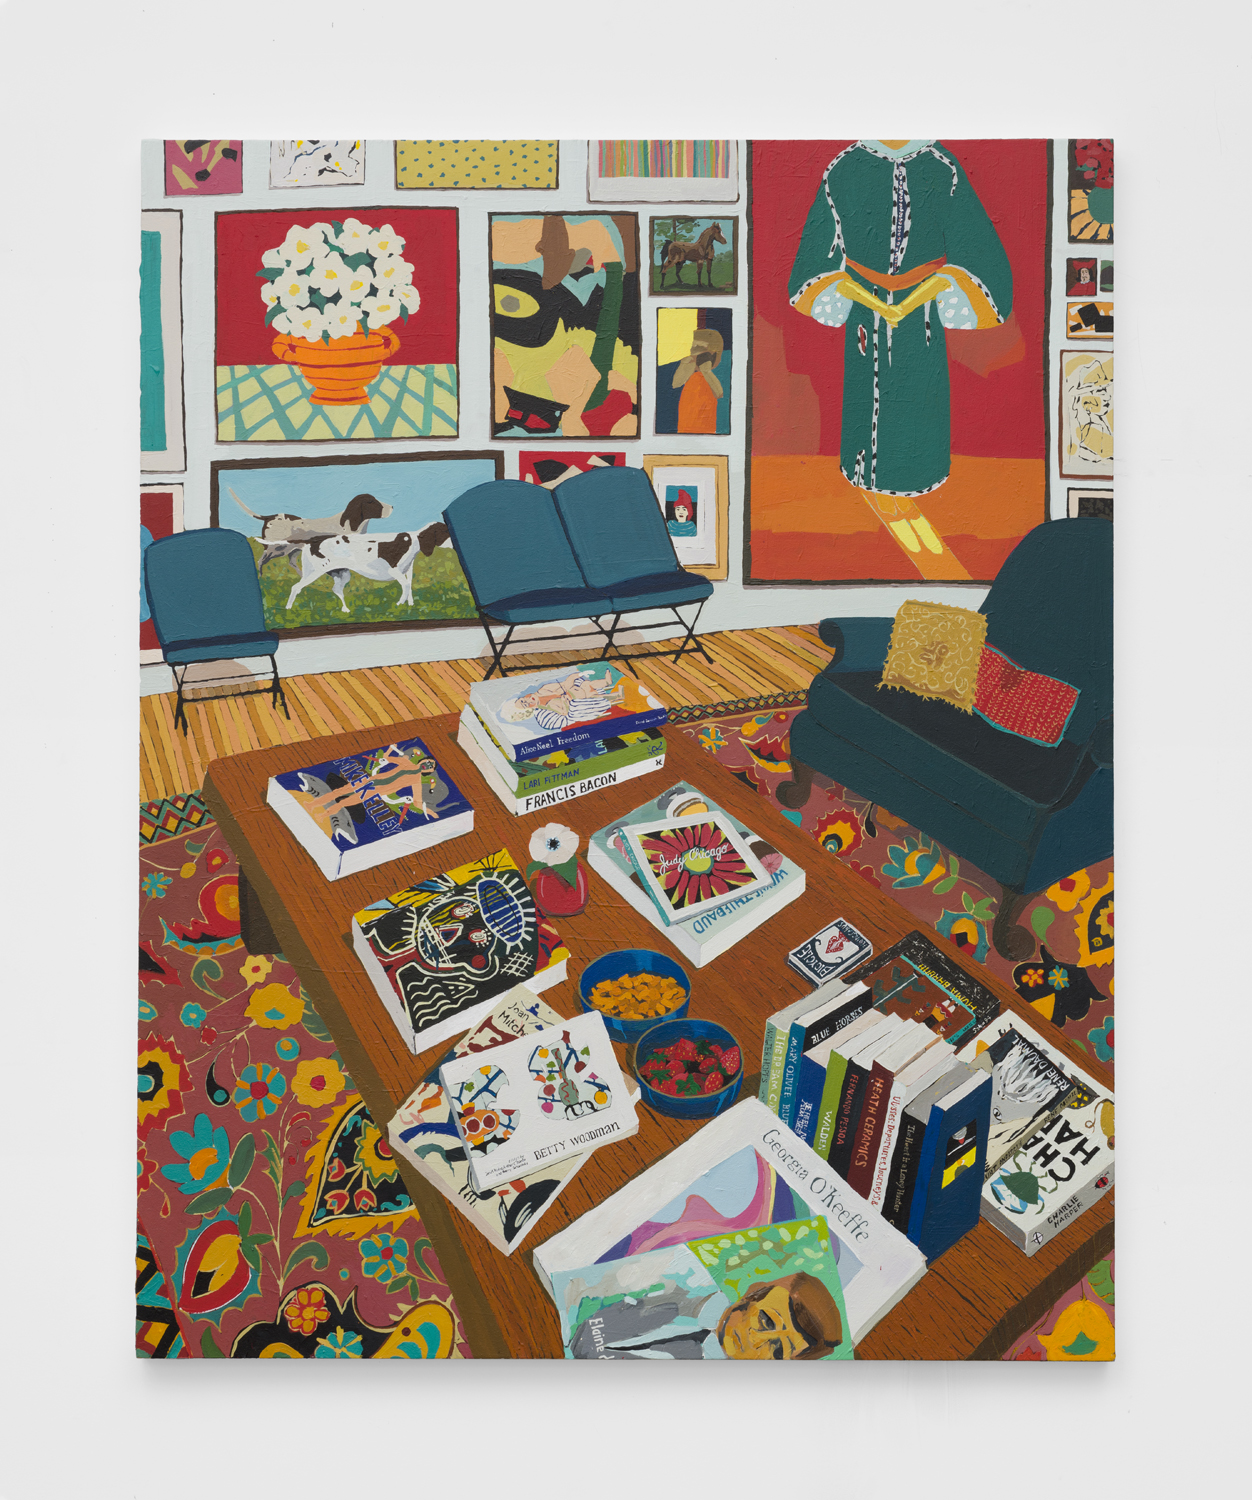 Interior with Books and Paintings   2019  Acrylic on canvas  60 x 48 inches